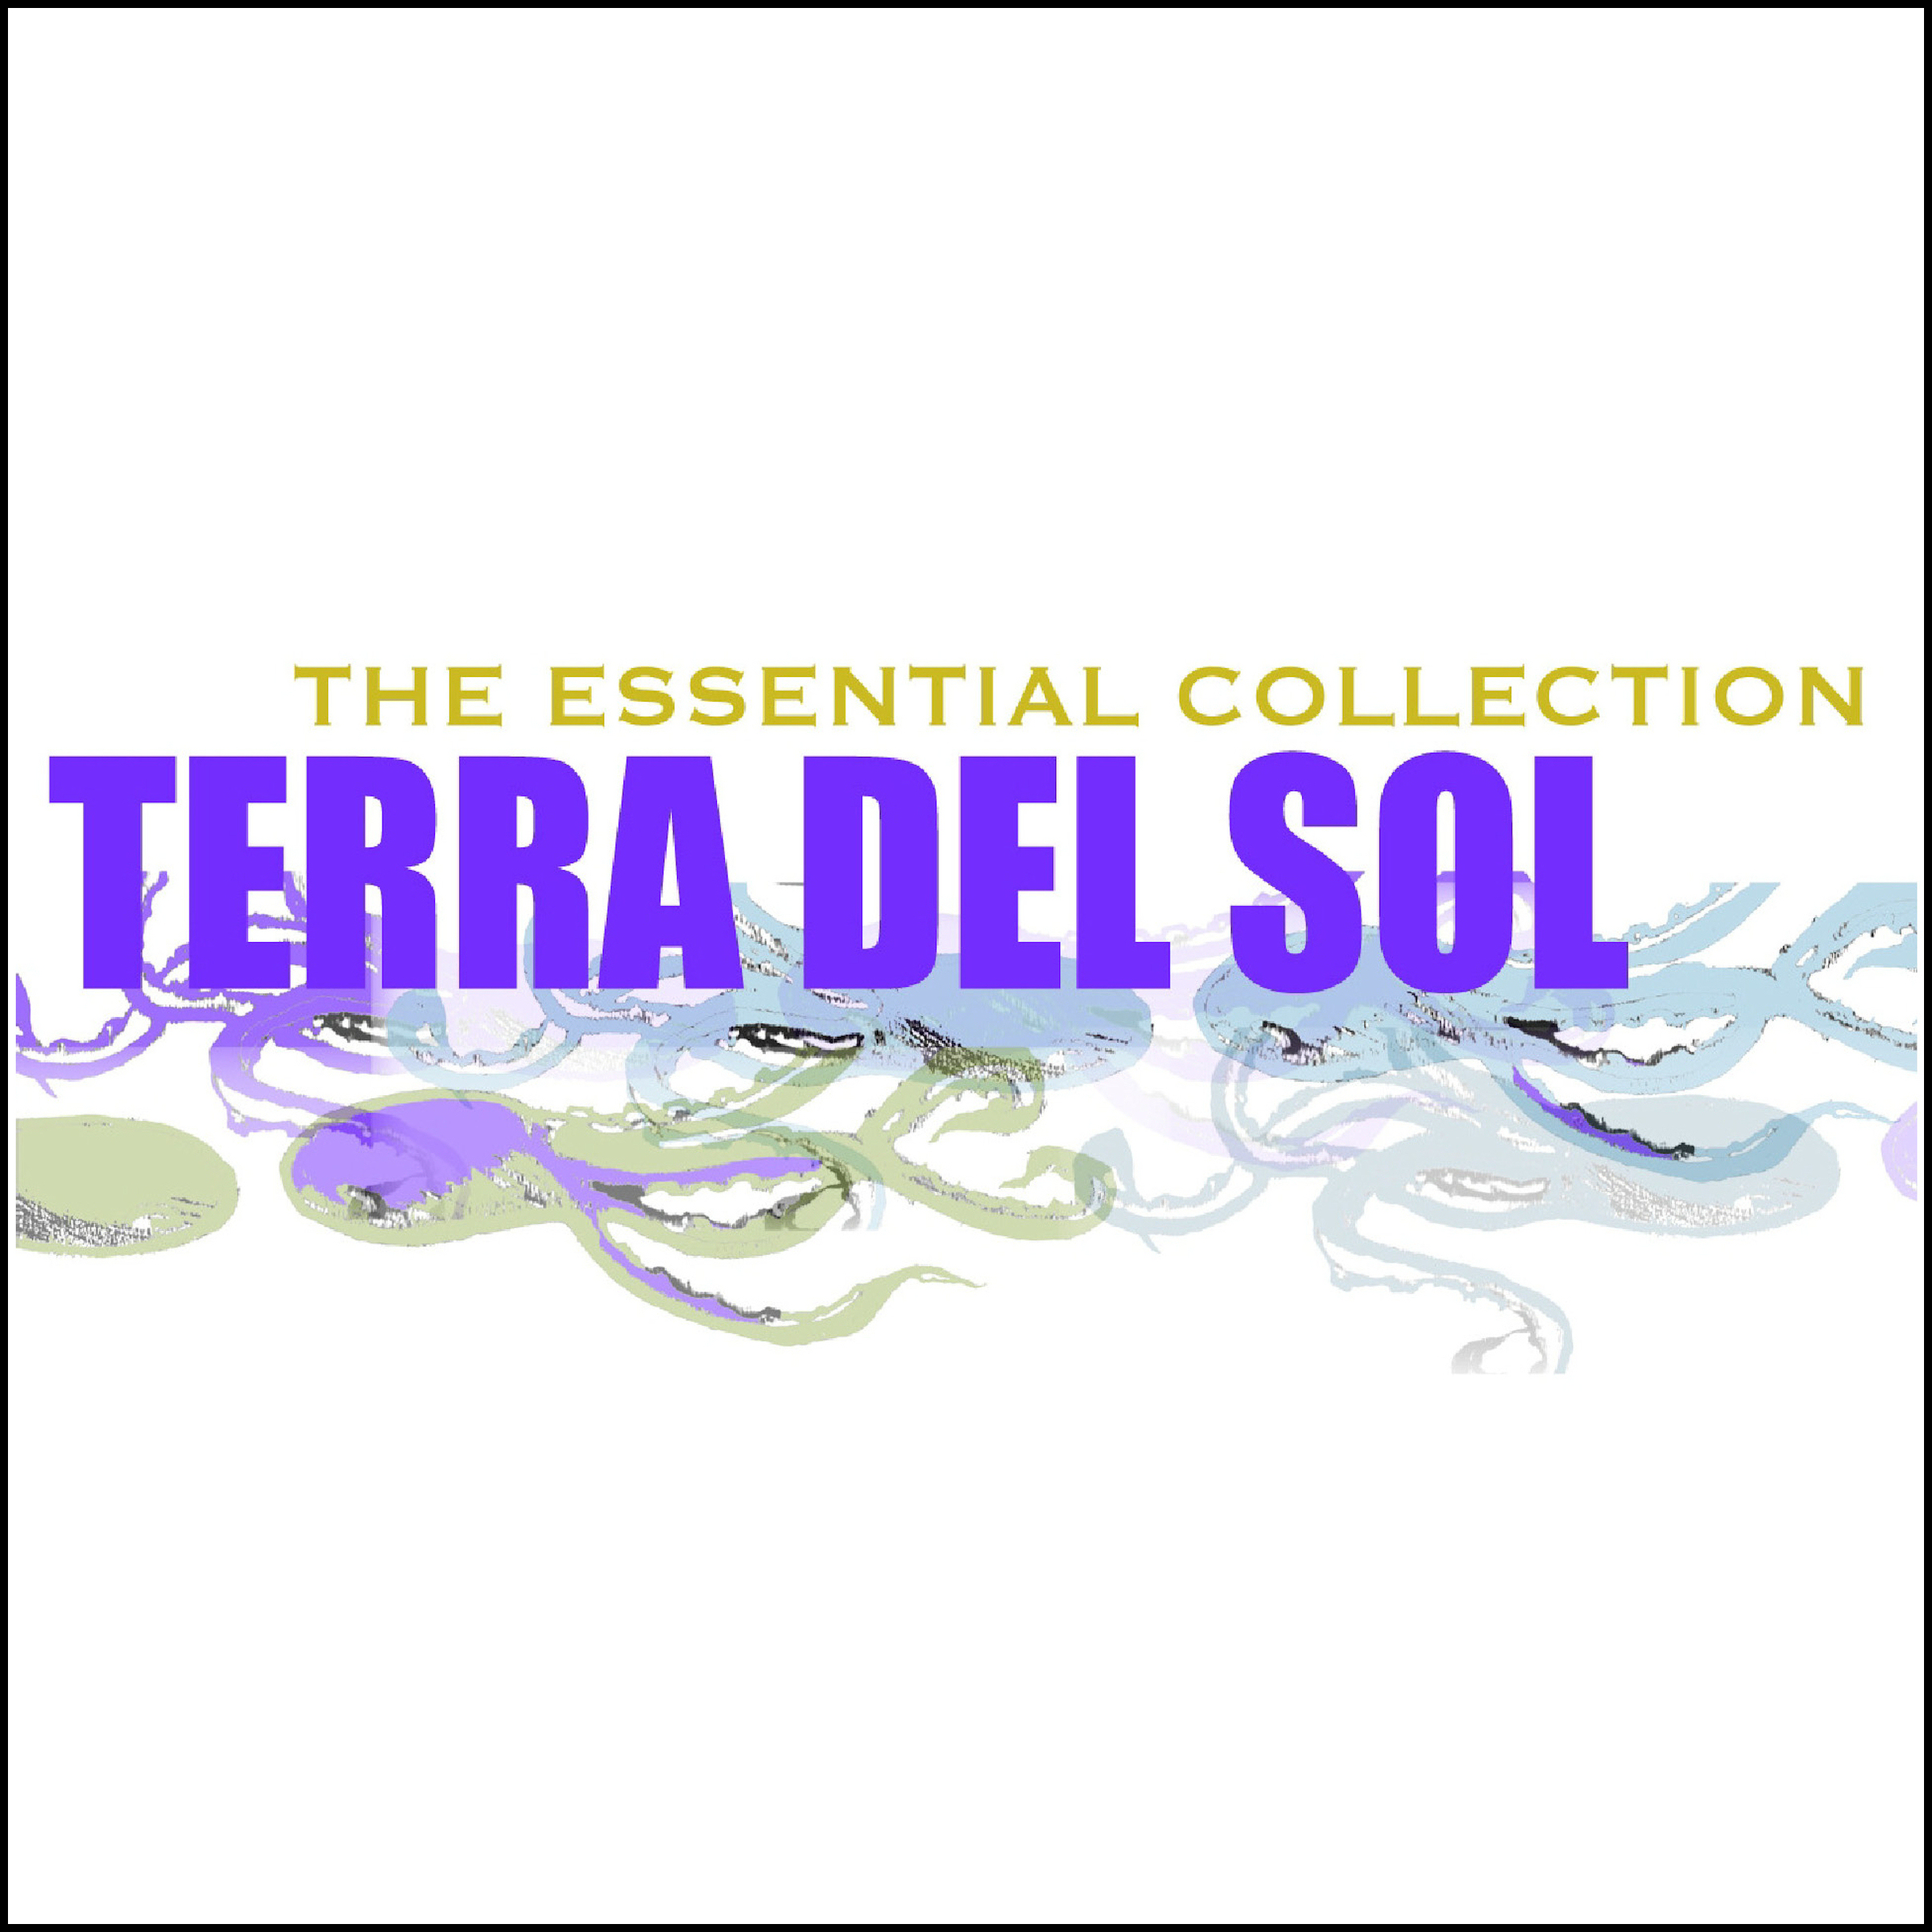 The Essential Collection by Terra del Sol